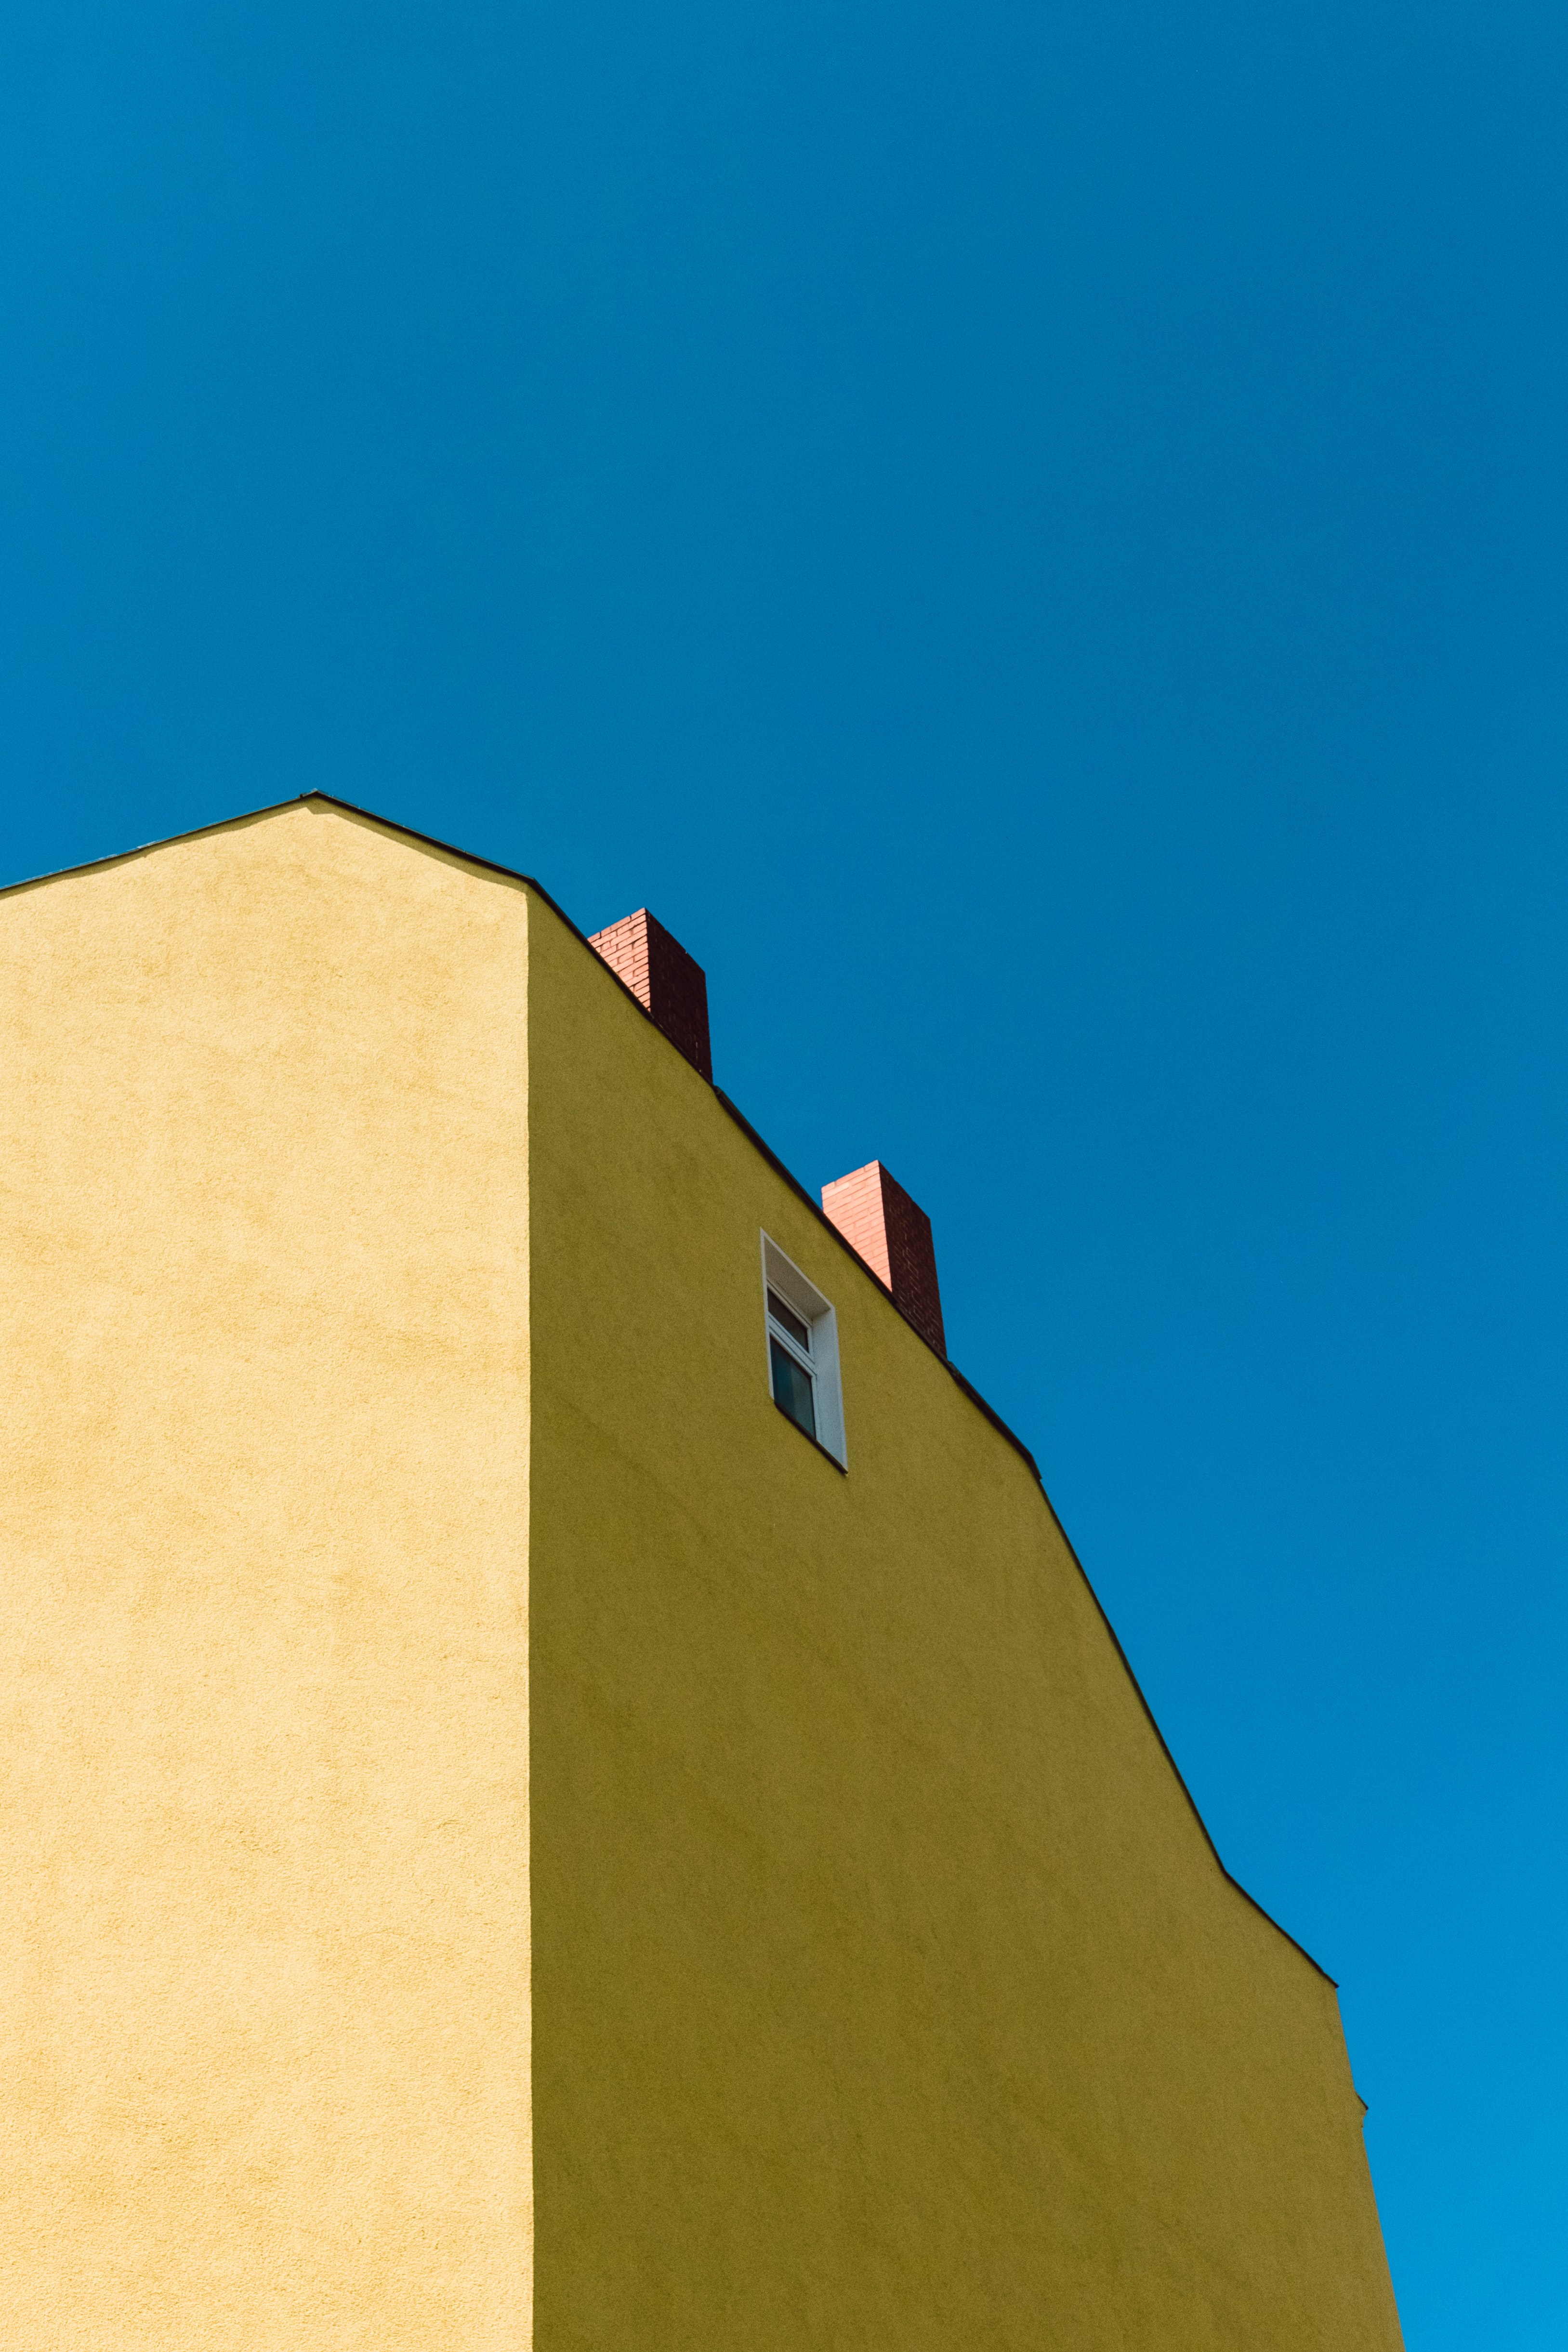 low-angle photography of yellow concrete building under blue sky